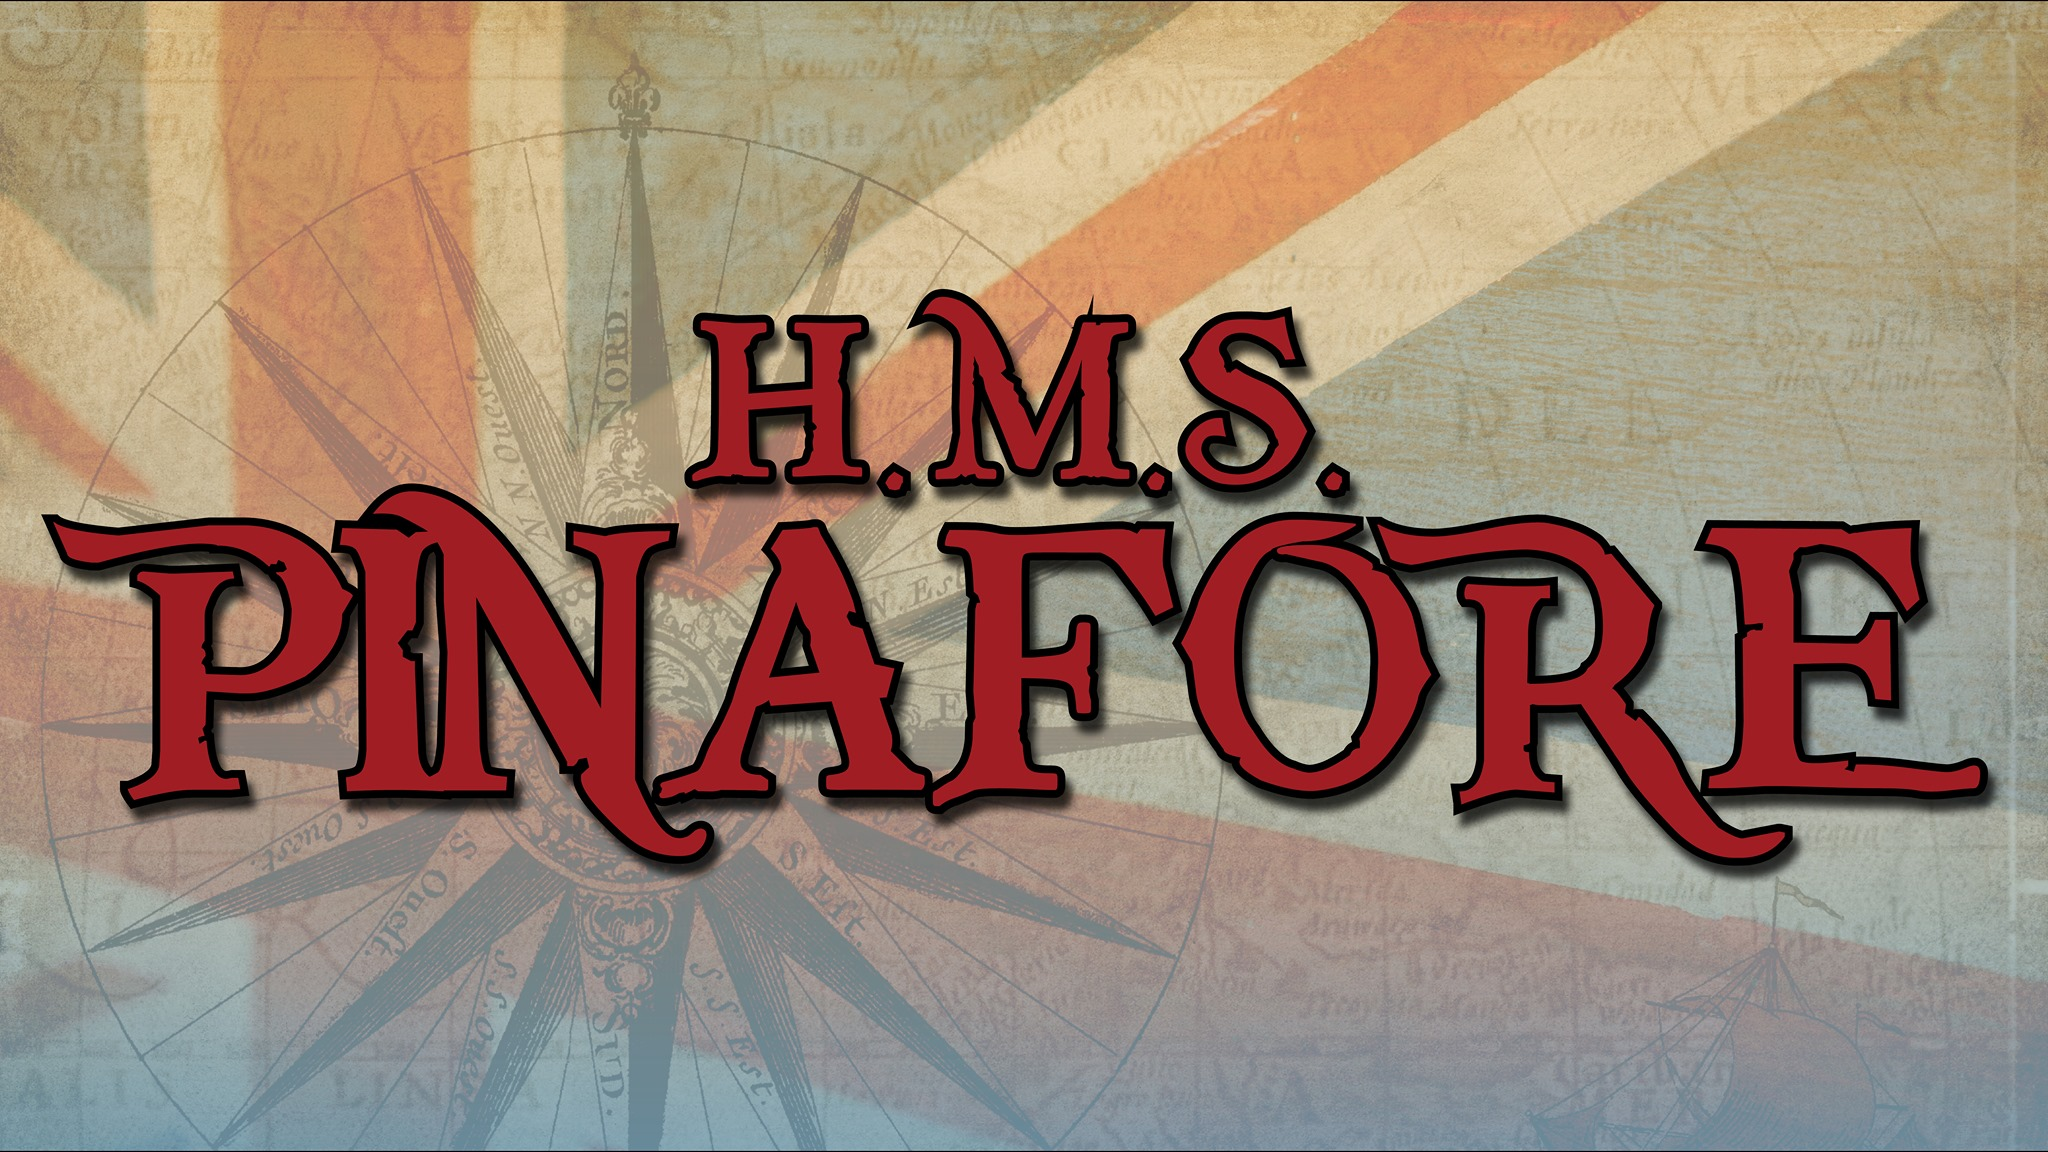 NKU_HMS Pinafore replay logo